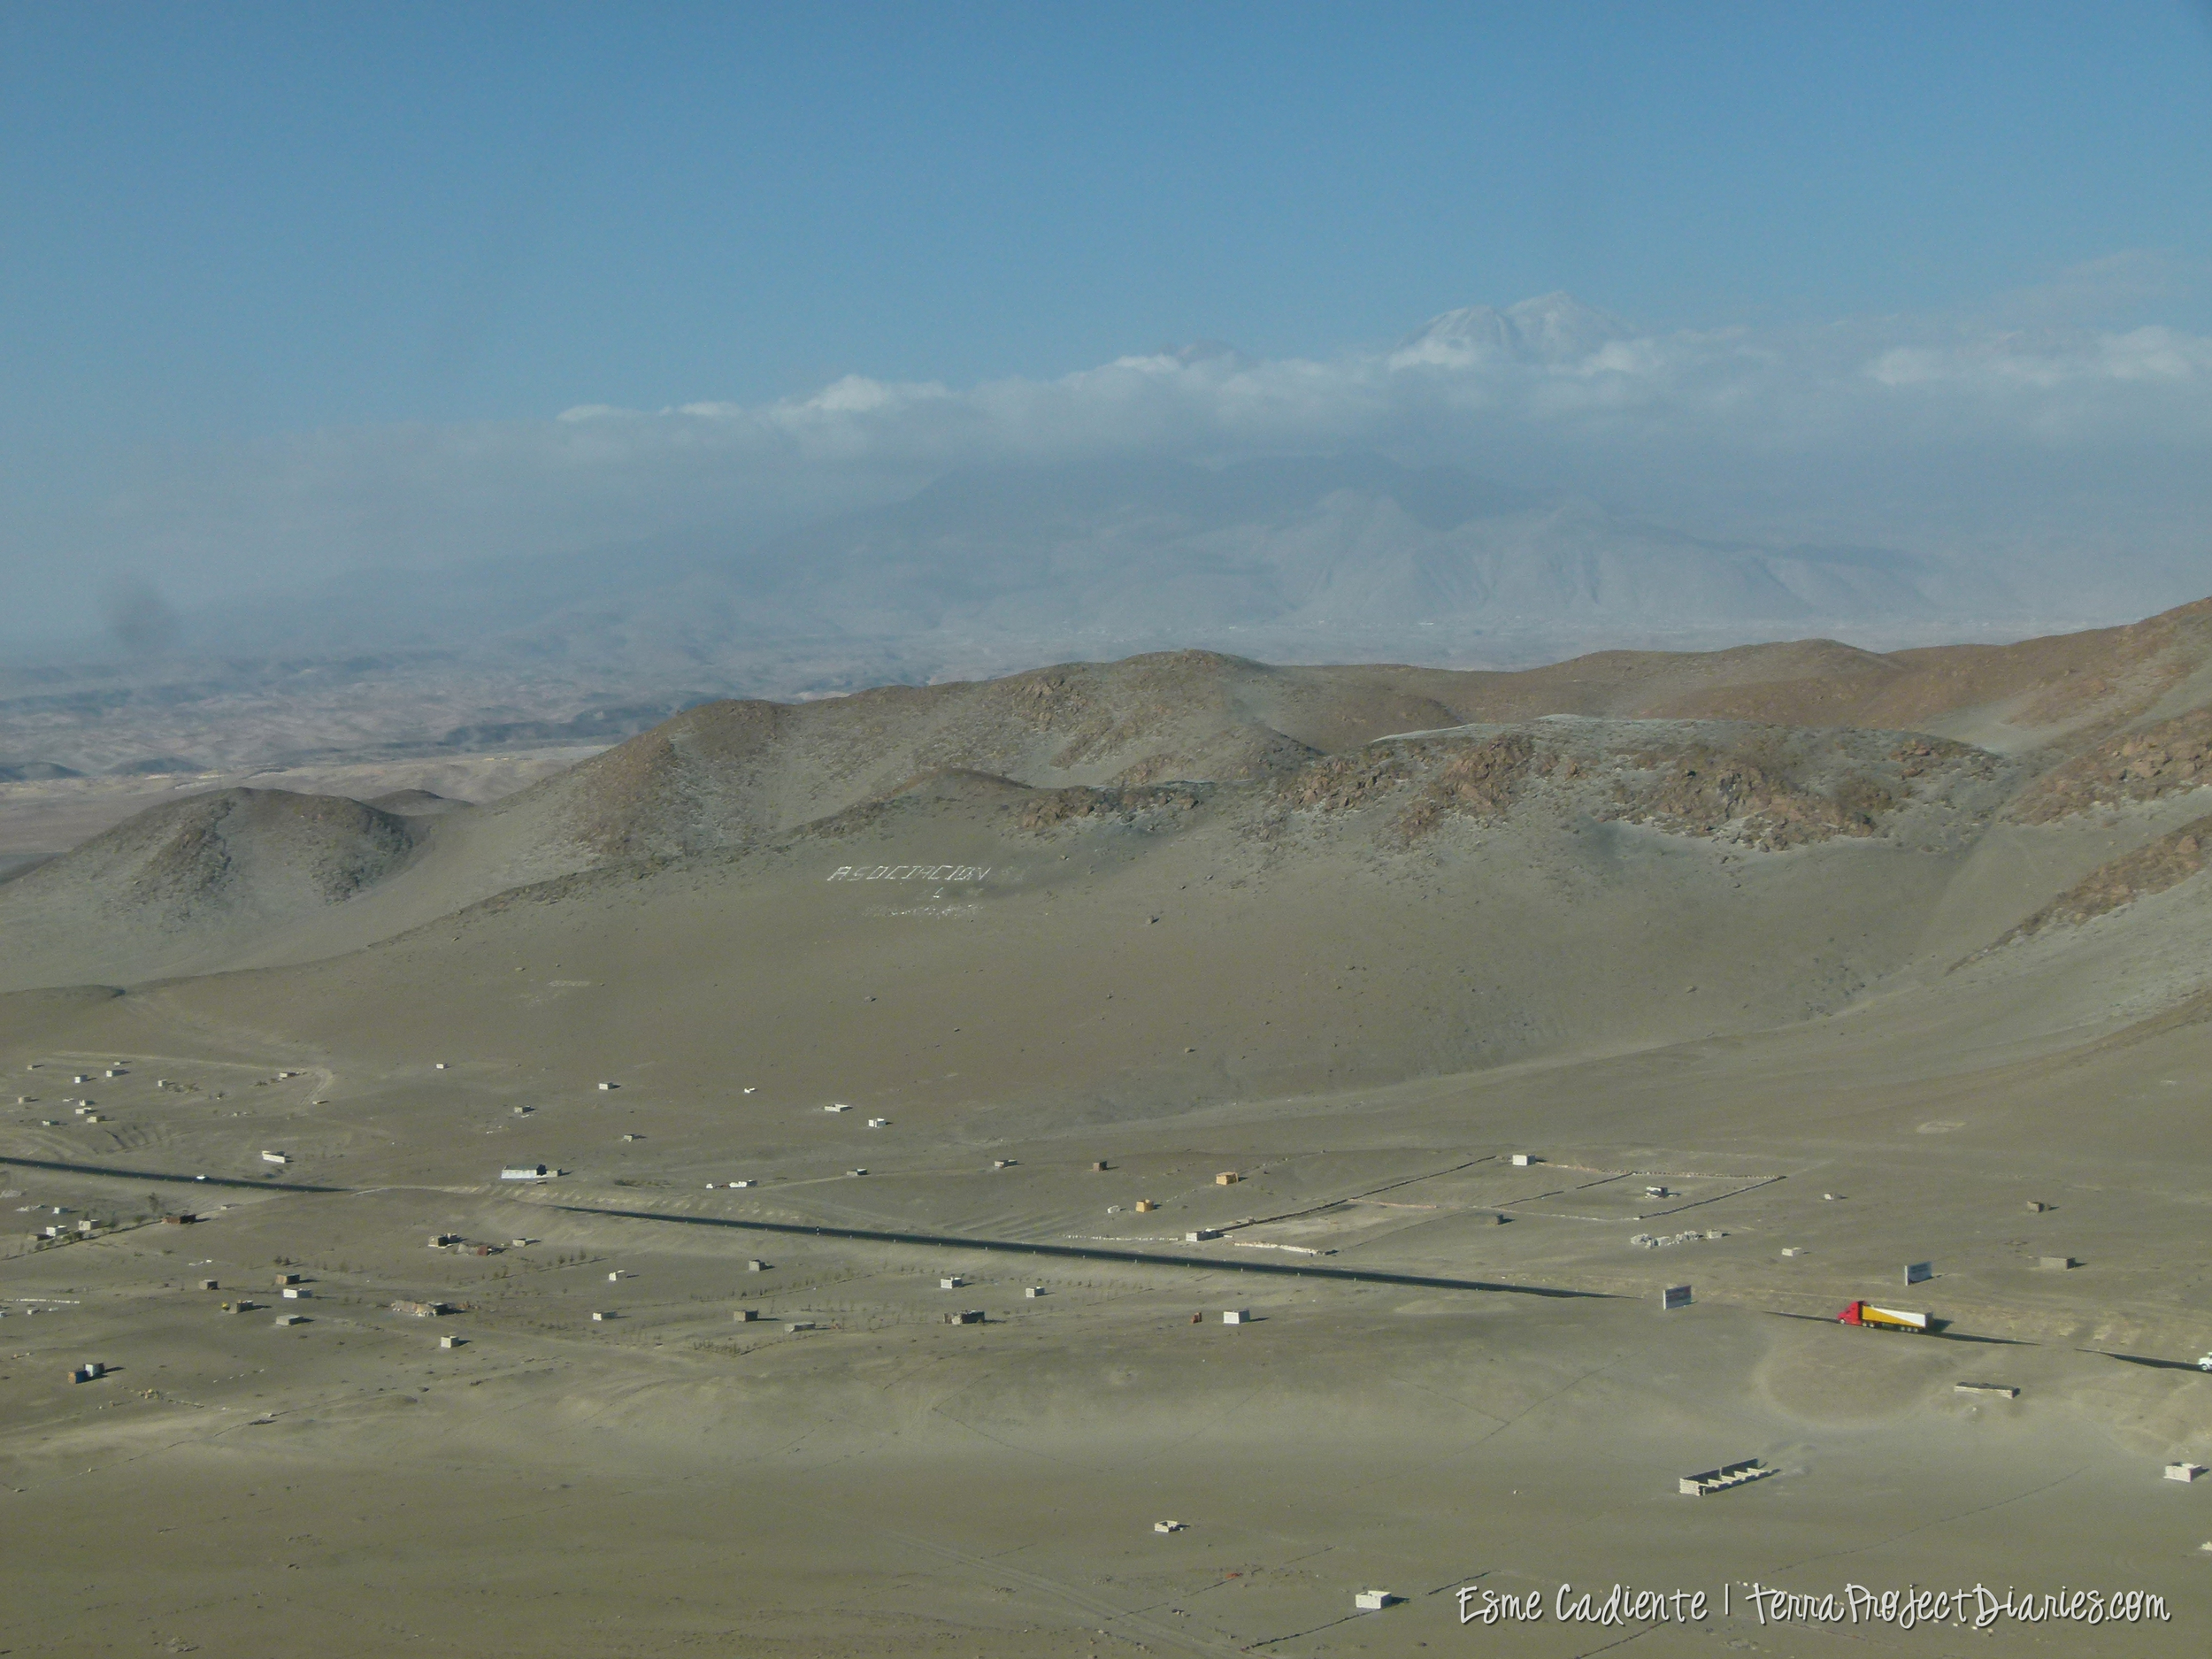 A strip of highway, accompanied by shacks here and there, slice through the desert in Southern Perú.